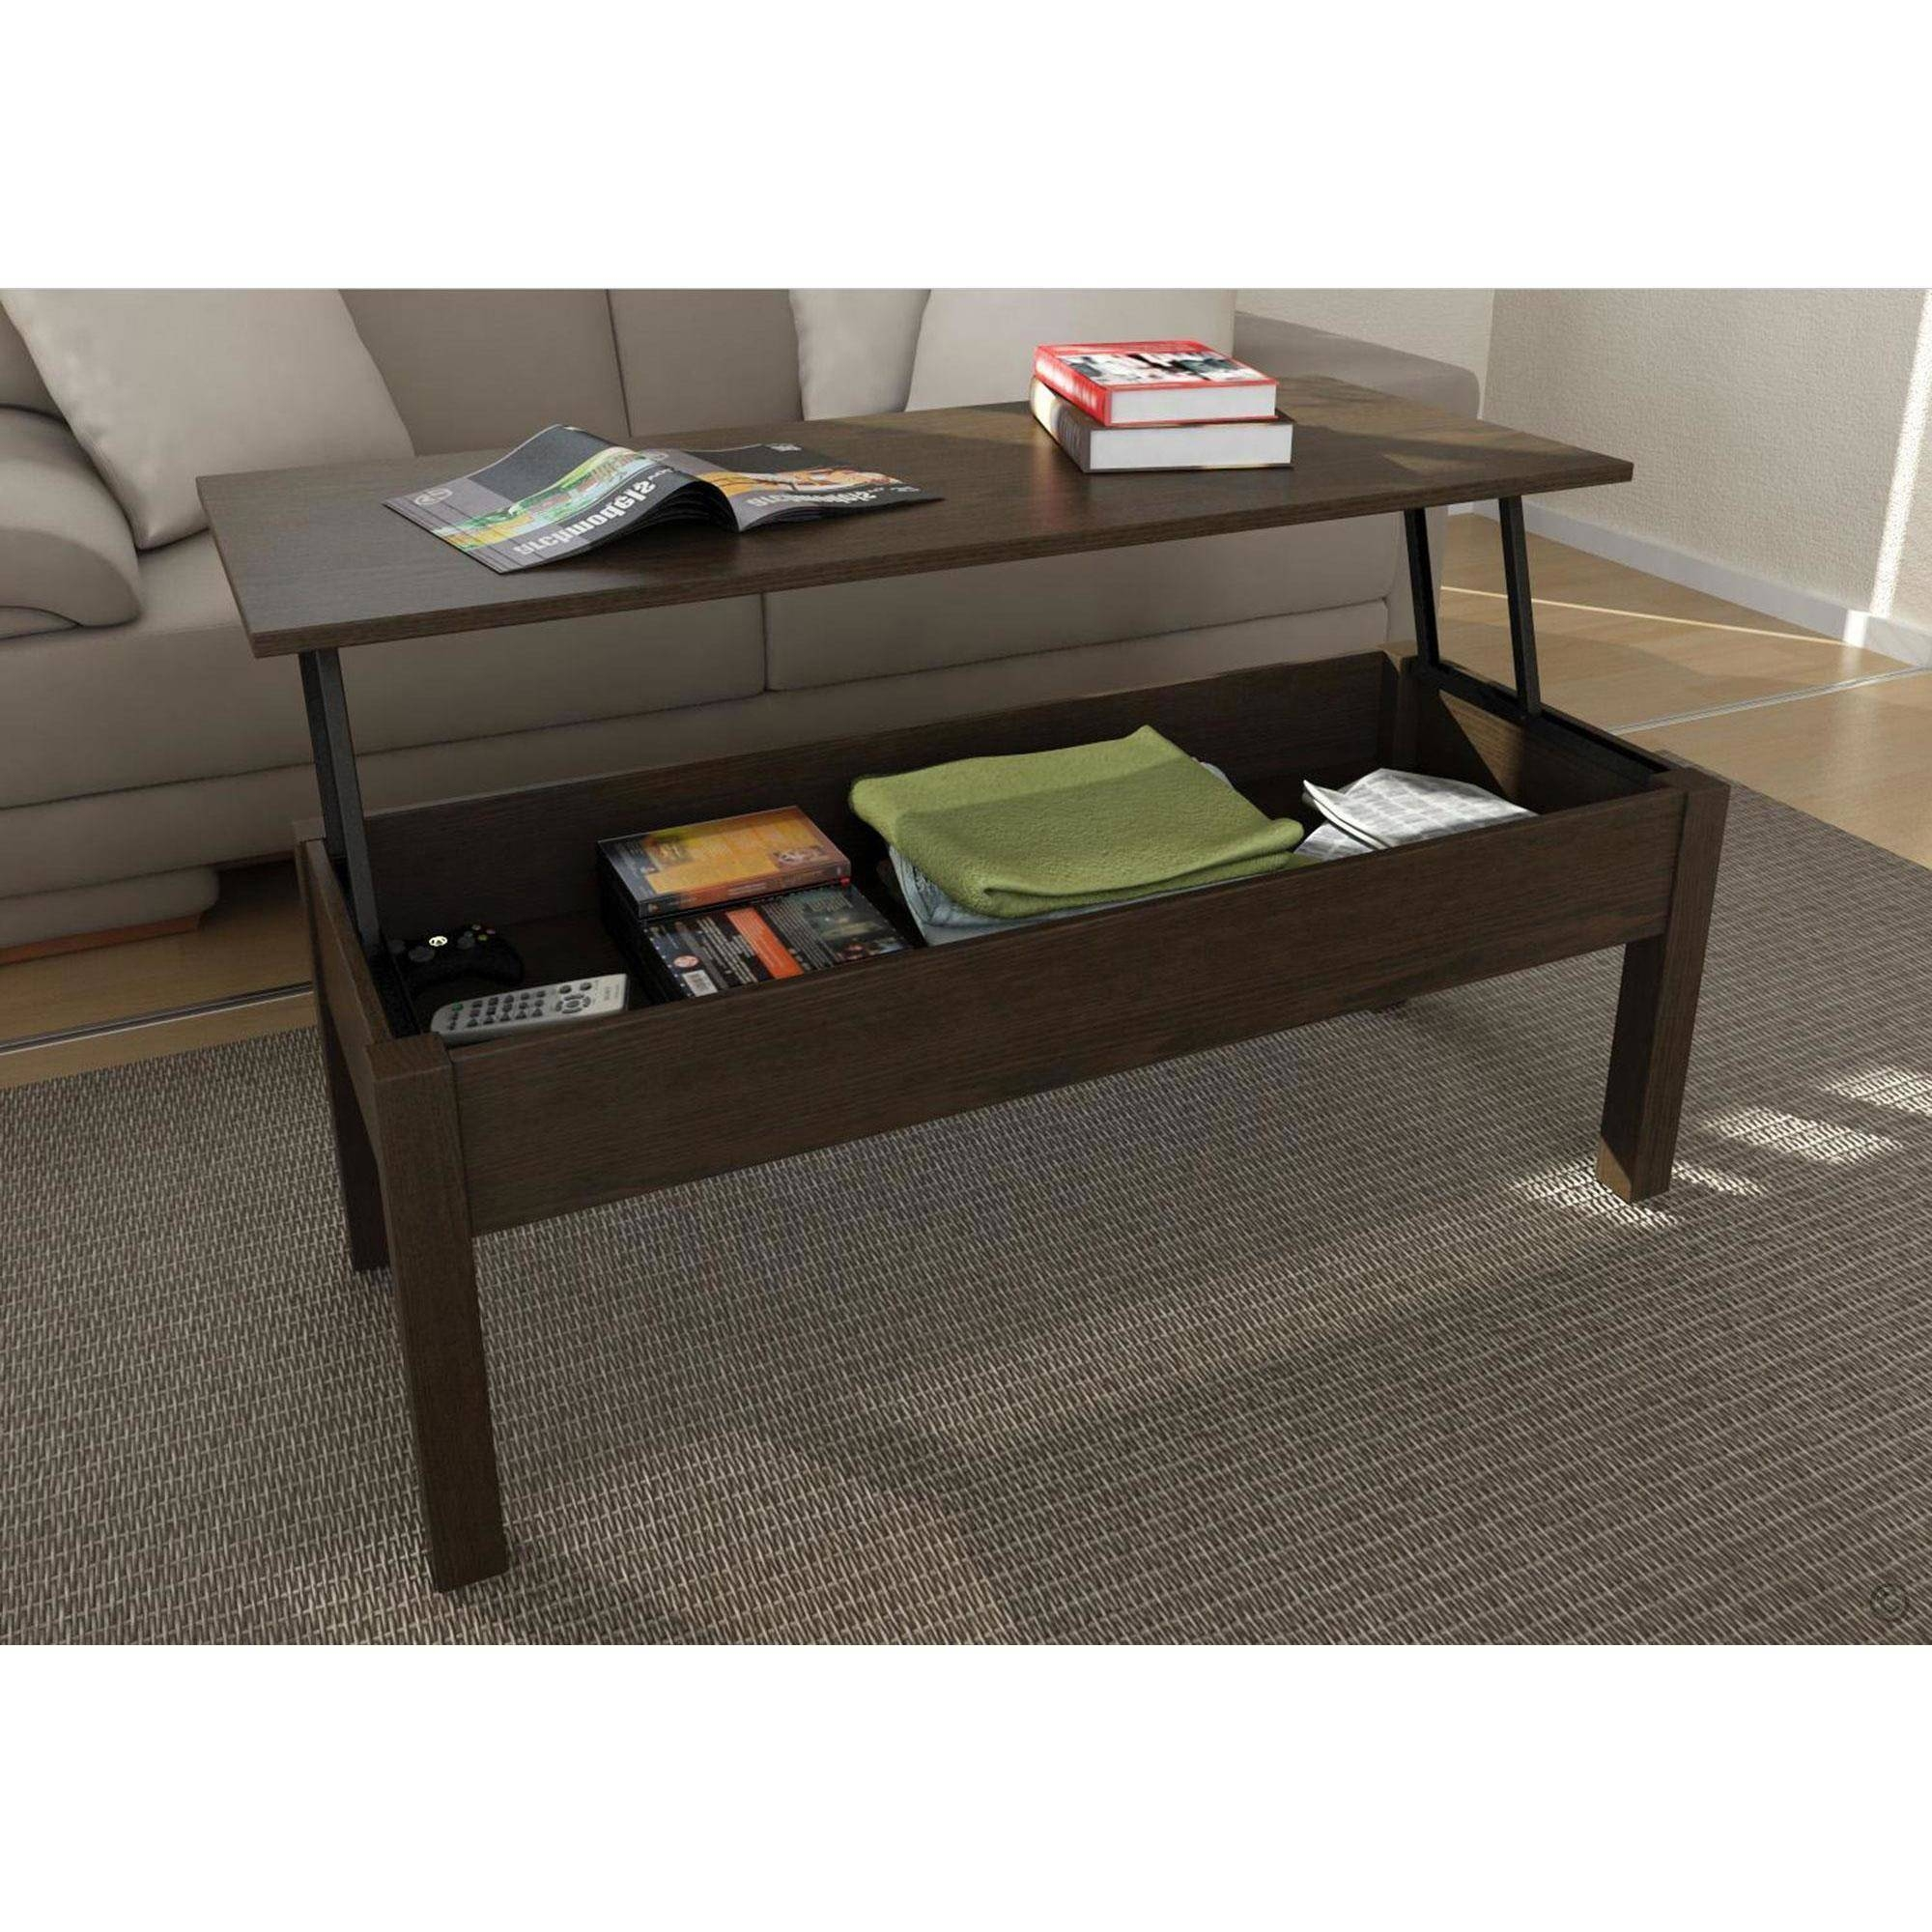 Mainstays Lift-Top Coffee Table, Multiple Colors - Walmart intended for Flip Top Coffee Tables (Image 22 of 30)